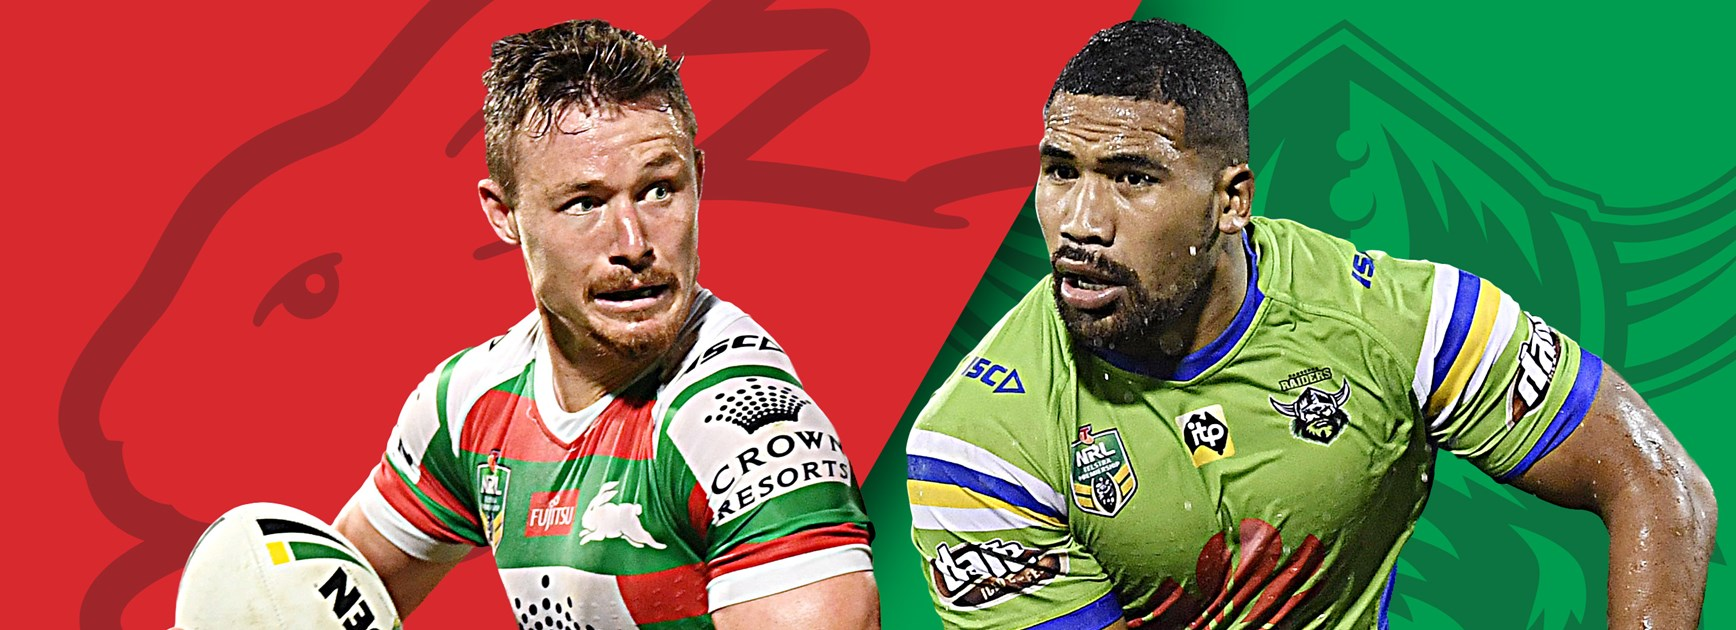 Rabbitohs v Raiders: Burgess back, Murray out against unchanged Raiders